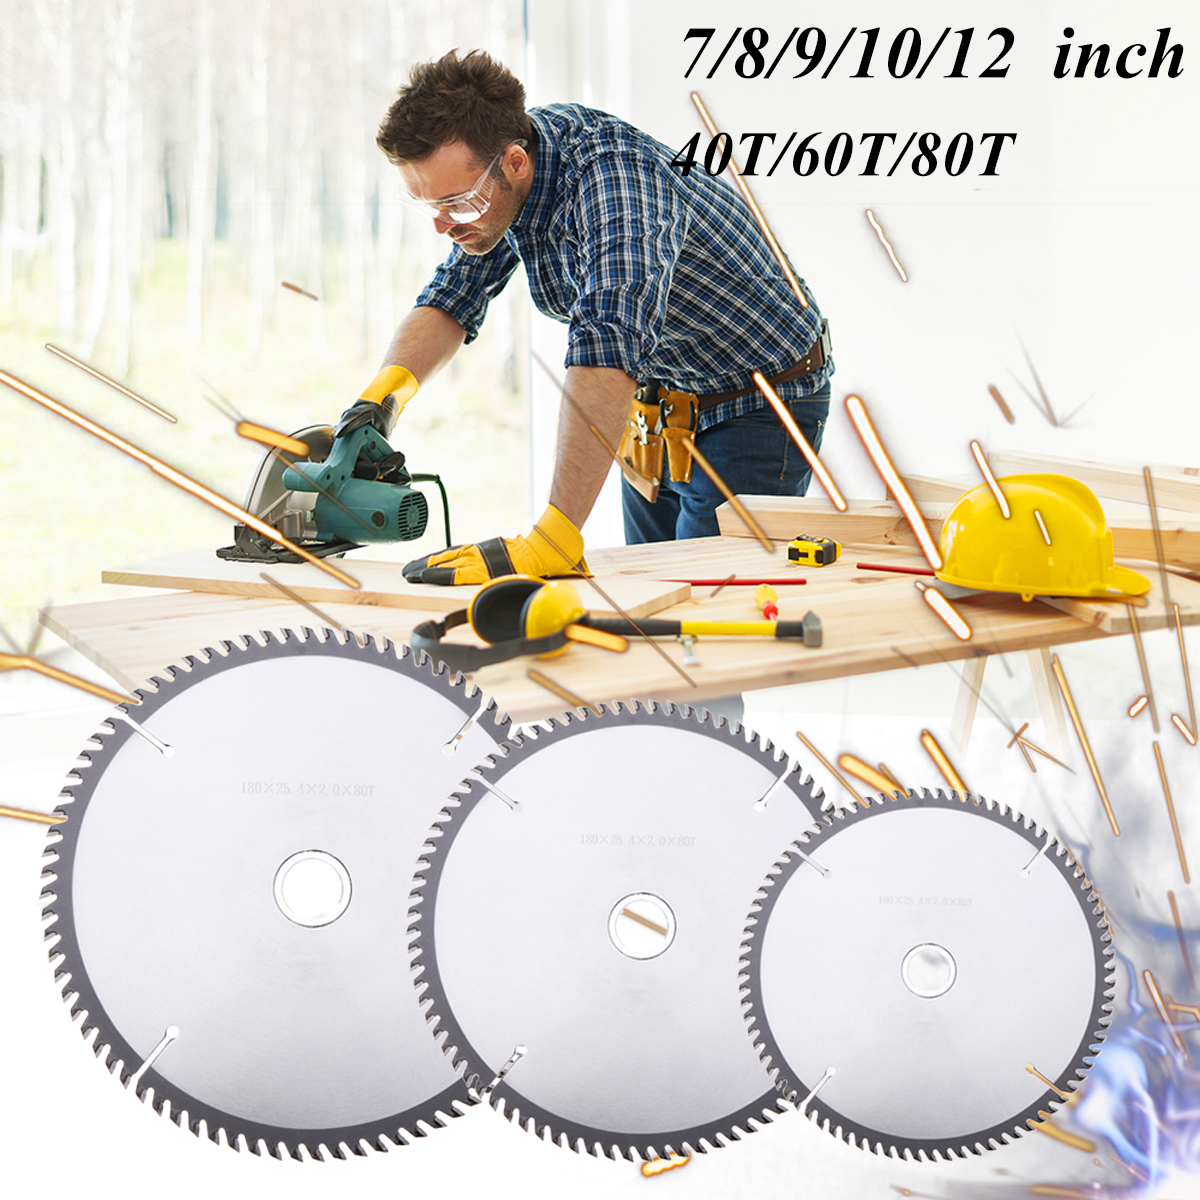 7/8/9/10/12 Inch 40T/60T/80T Alloy Circular Saw Blades Wood Cutting Craving Tool DIY Woodworking Cutter Saw Blades Disc7/8/9/10/12 Inch 40T/60T/80T Alloy Circular Saw Blades Wood Cutting Craving Tool DIY Woodworking Cutter Saw Blades Disc